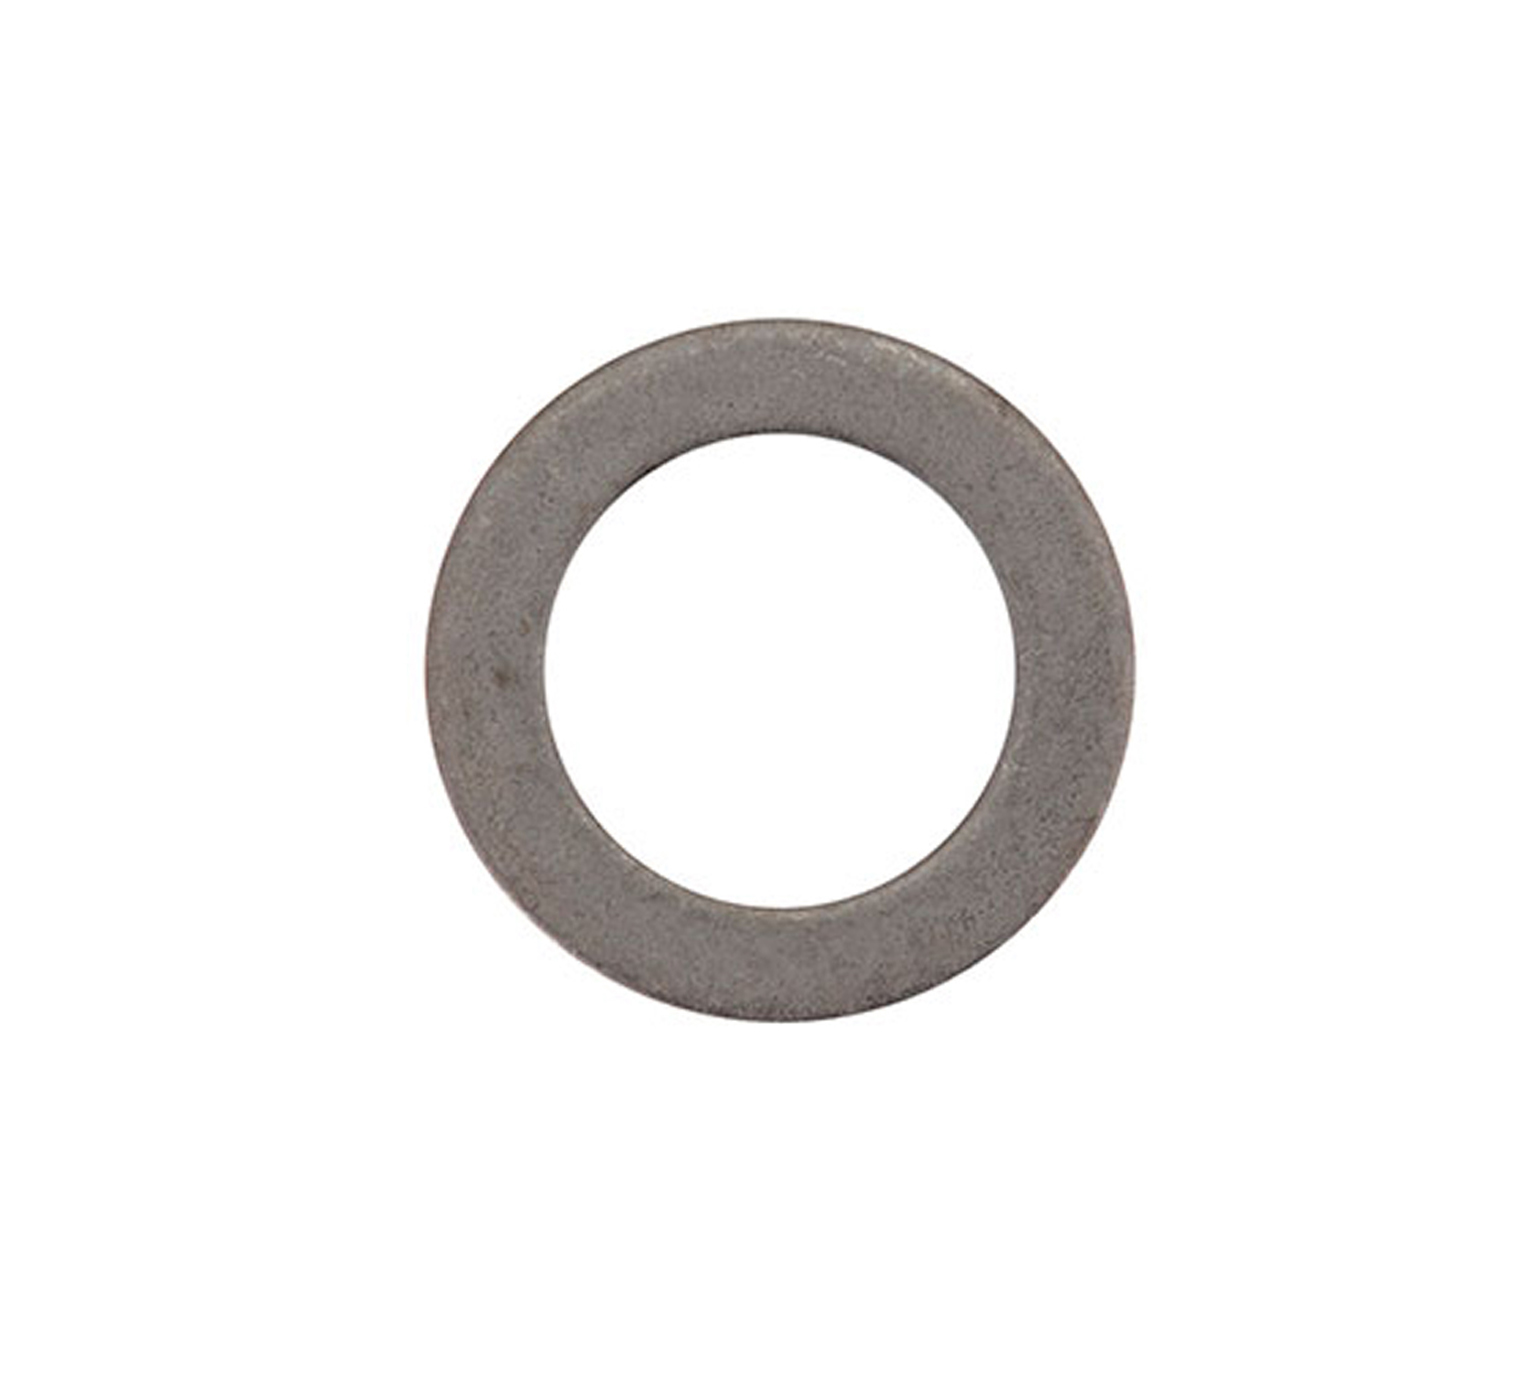 54051 Steel Flat Washer - 2.125 OD x 1.4 ID x 0.13 in alt 1